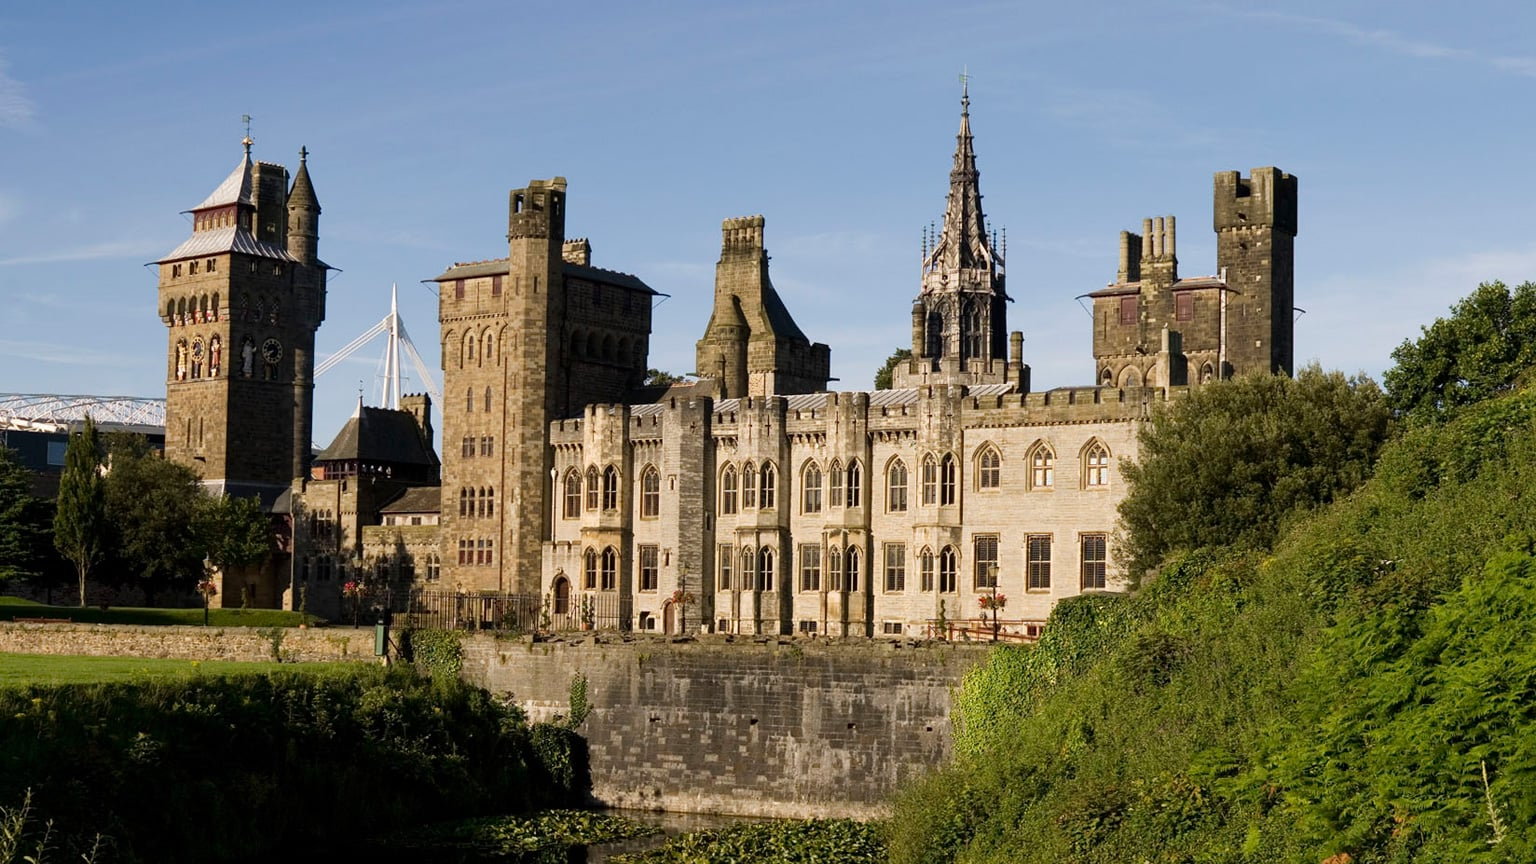 5. Cardiff Castle - Free entry with National Art Pass